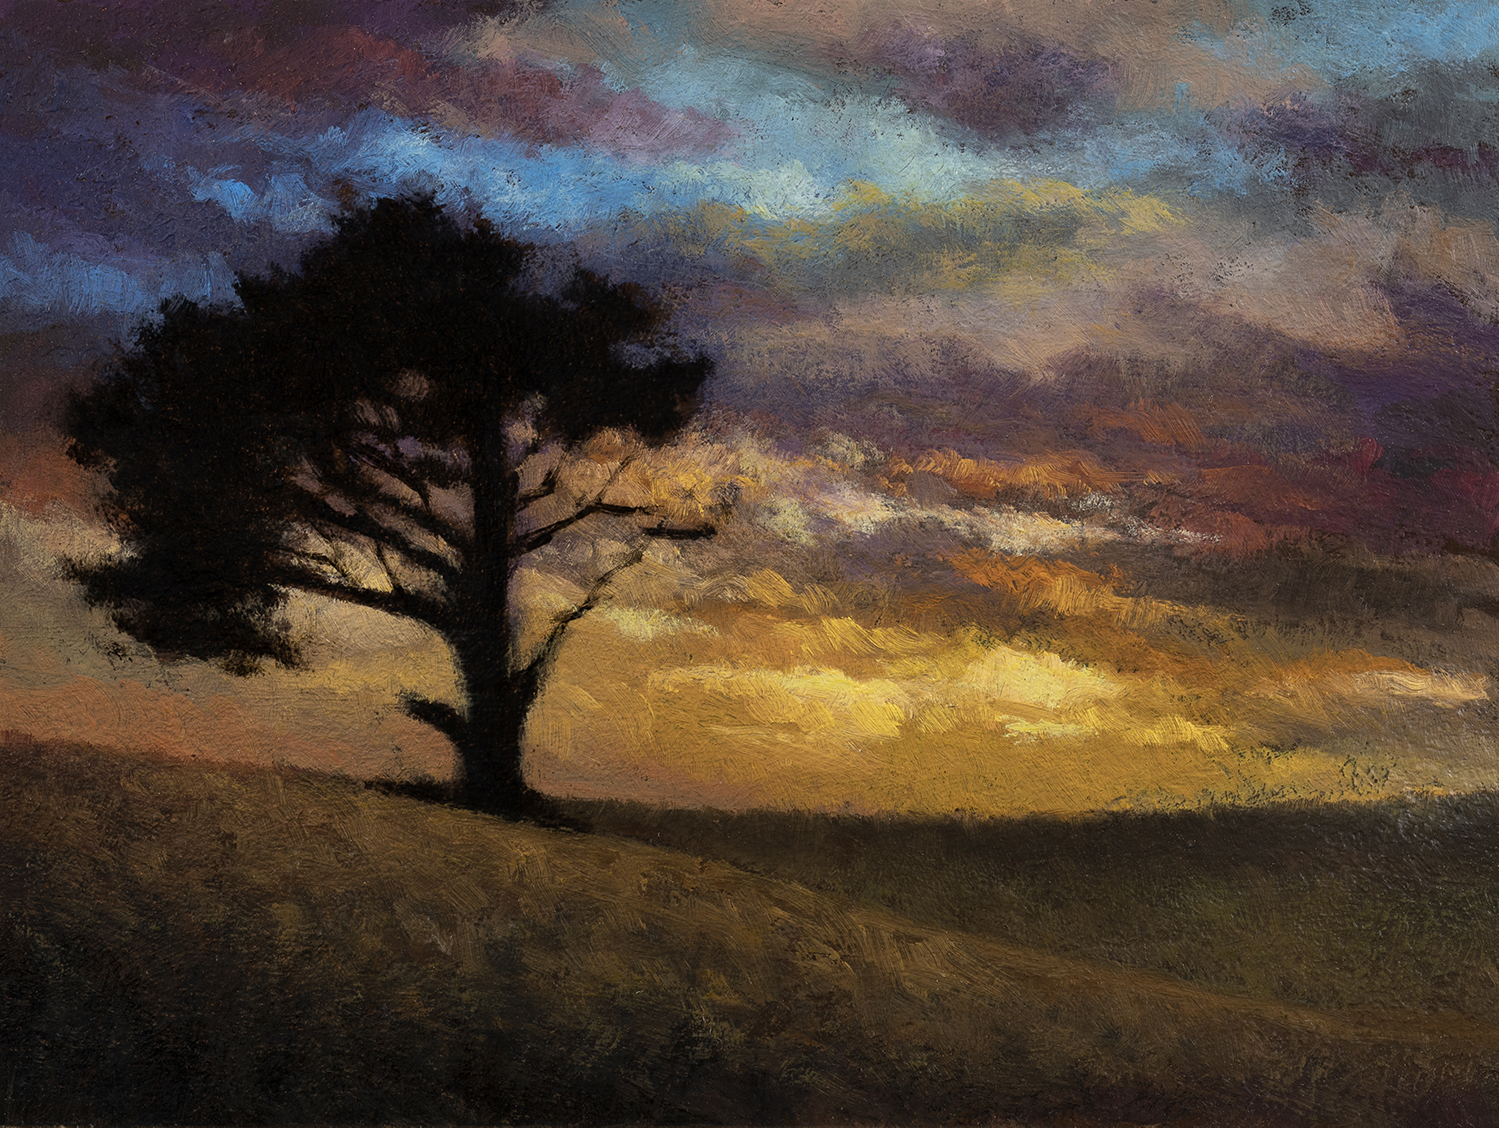 Twilight Color by M Francis McCarthy - 6x8 Oil on Wood Panel